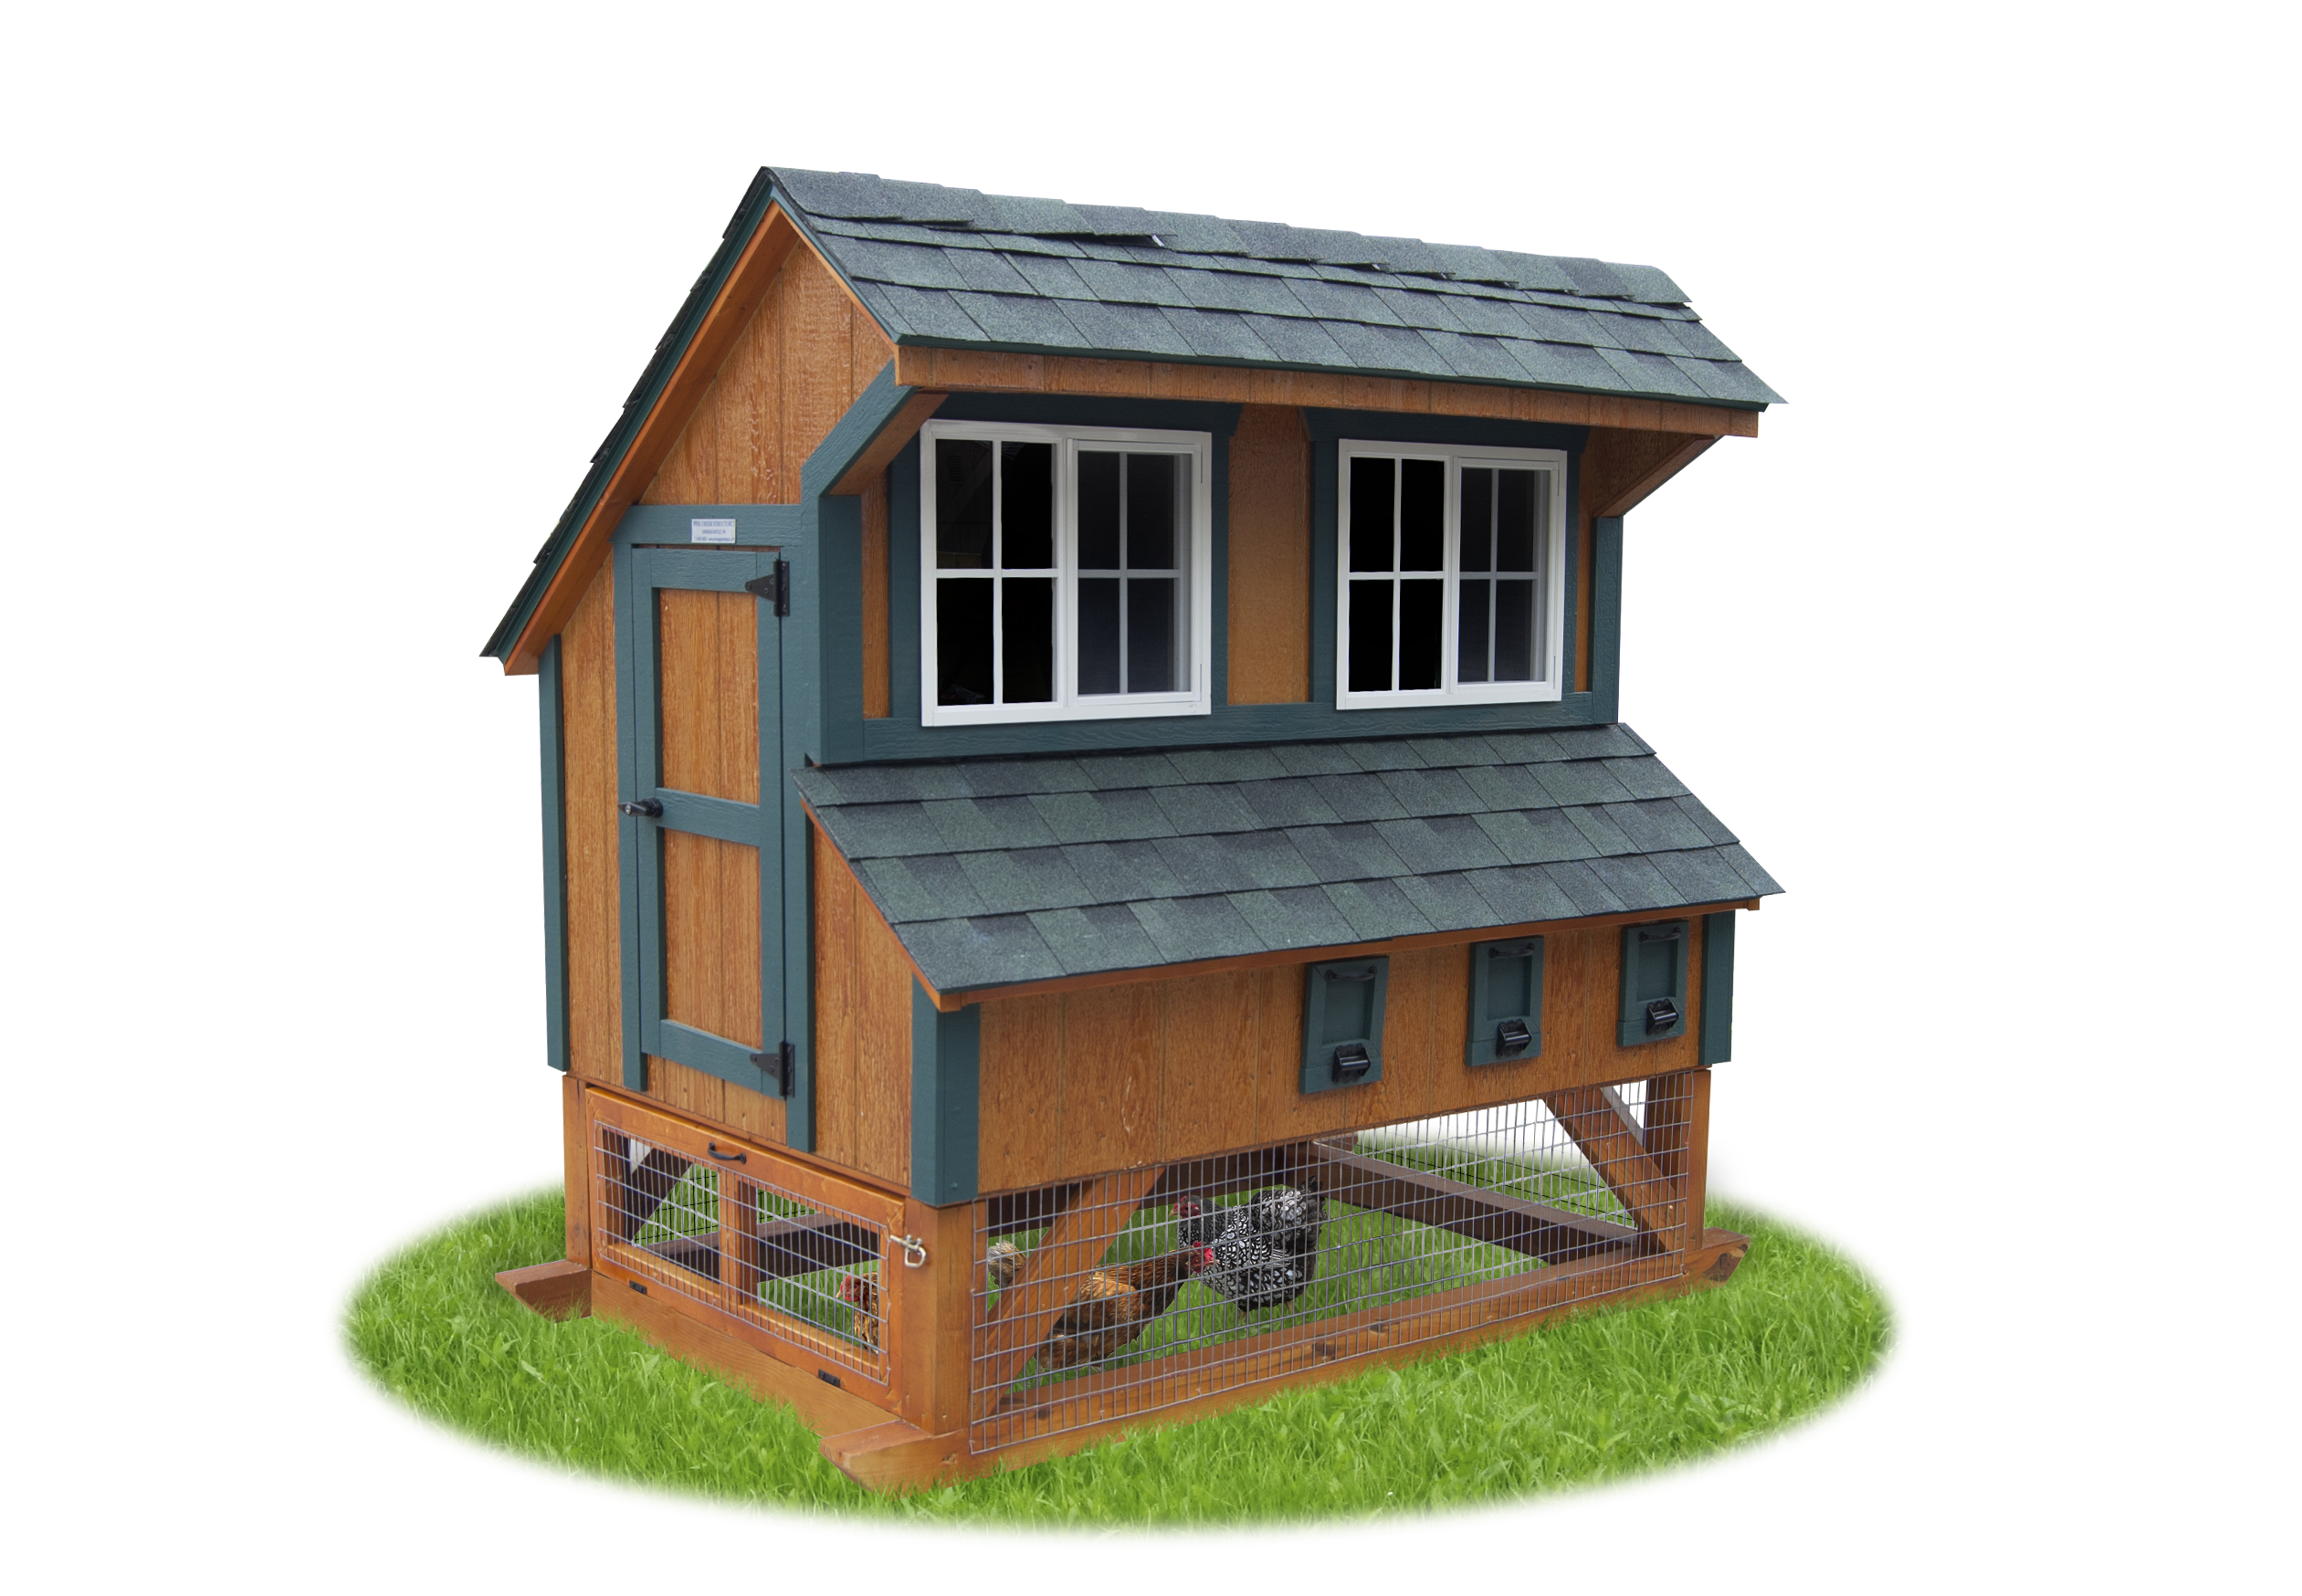 4x6 Mini Chicken Condo Shown with rustic cedar polyurethane on LP SmartSide, hunter green trim, two sliding windows, access door, turn-out door, three nesting boxes with egg doors, roosts, ramp from interior to wire enclosed area below, and green shingles.